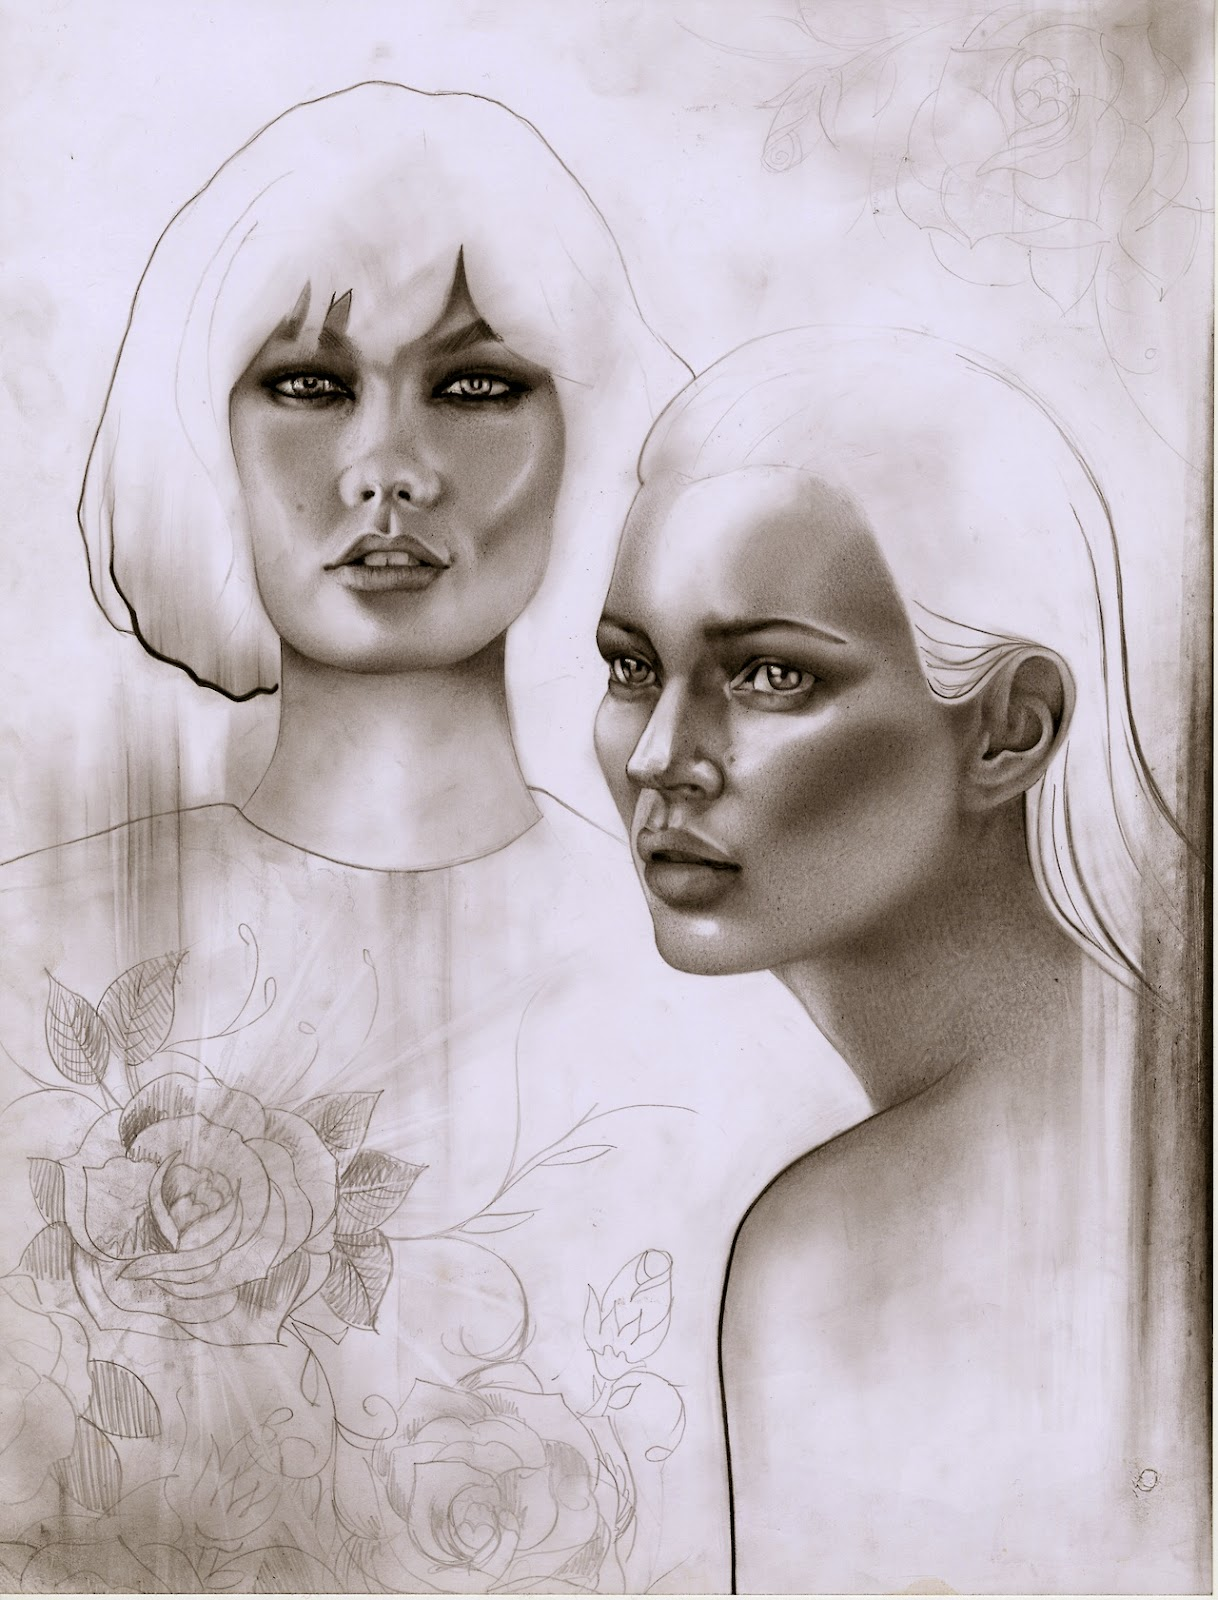 05-Bex-Cassie-Light-Versus-Dark-Drawings-www-designstack-co